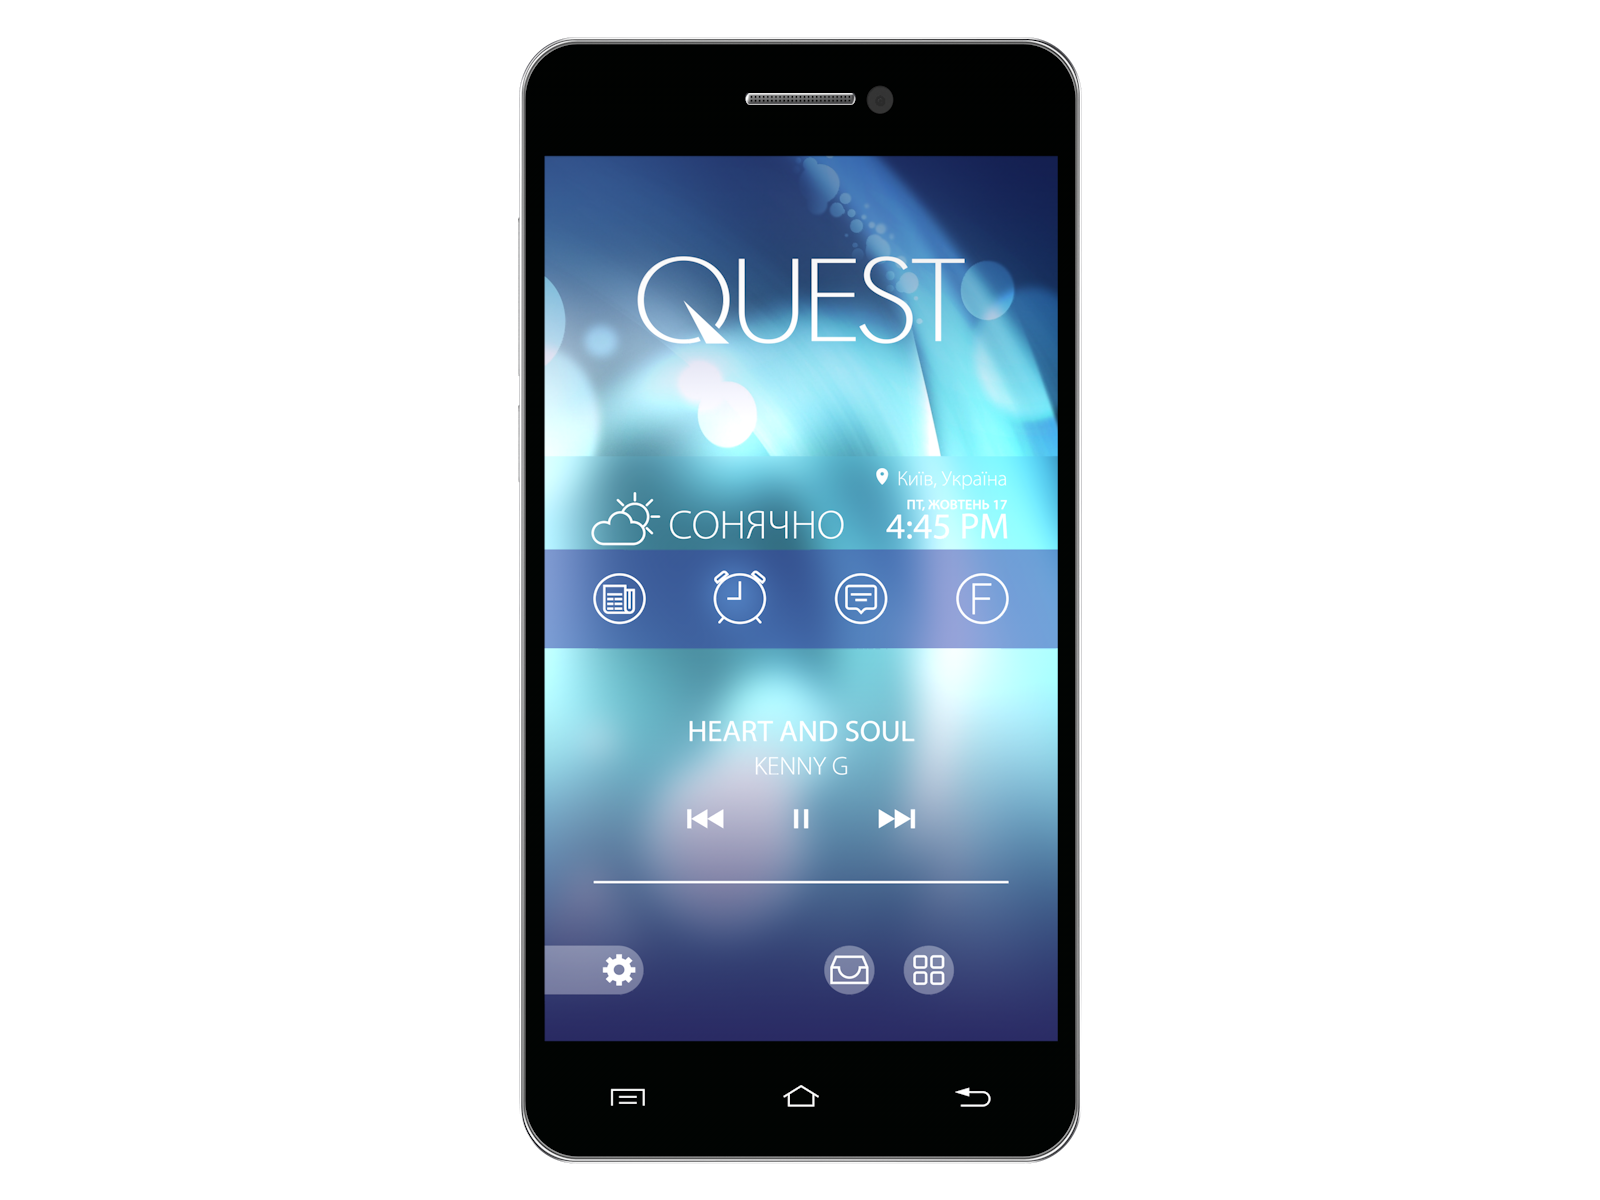 Quest-507_01